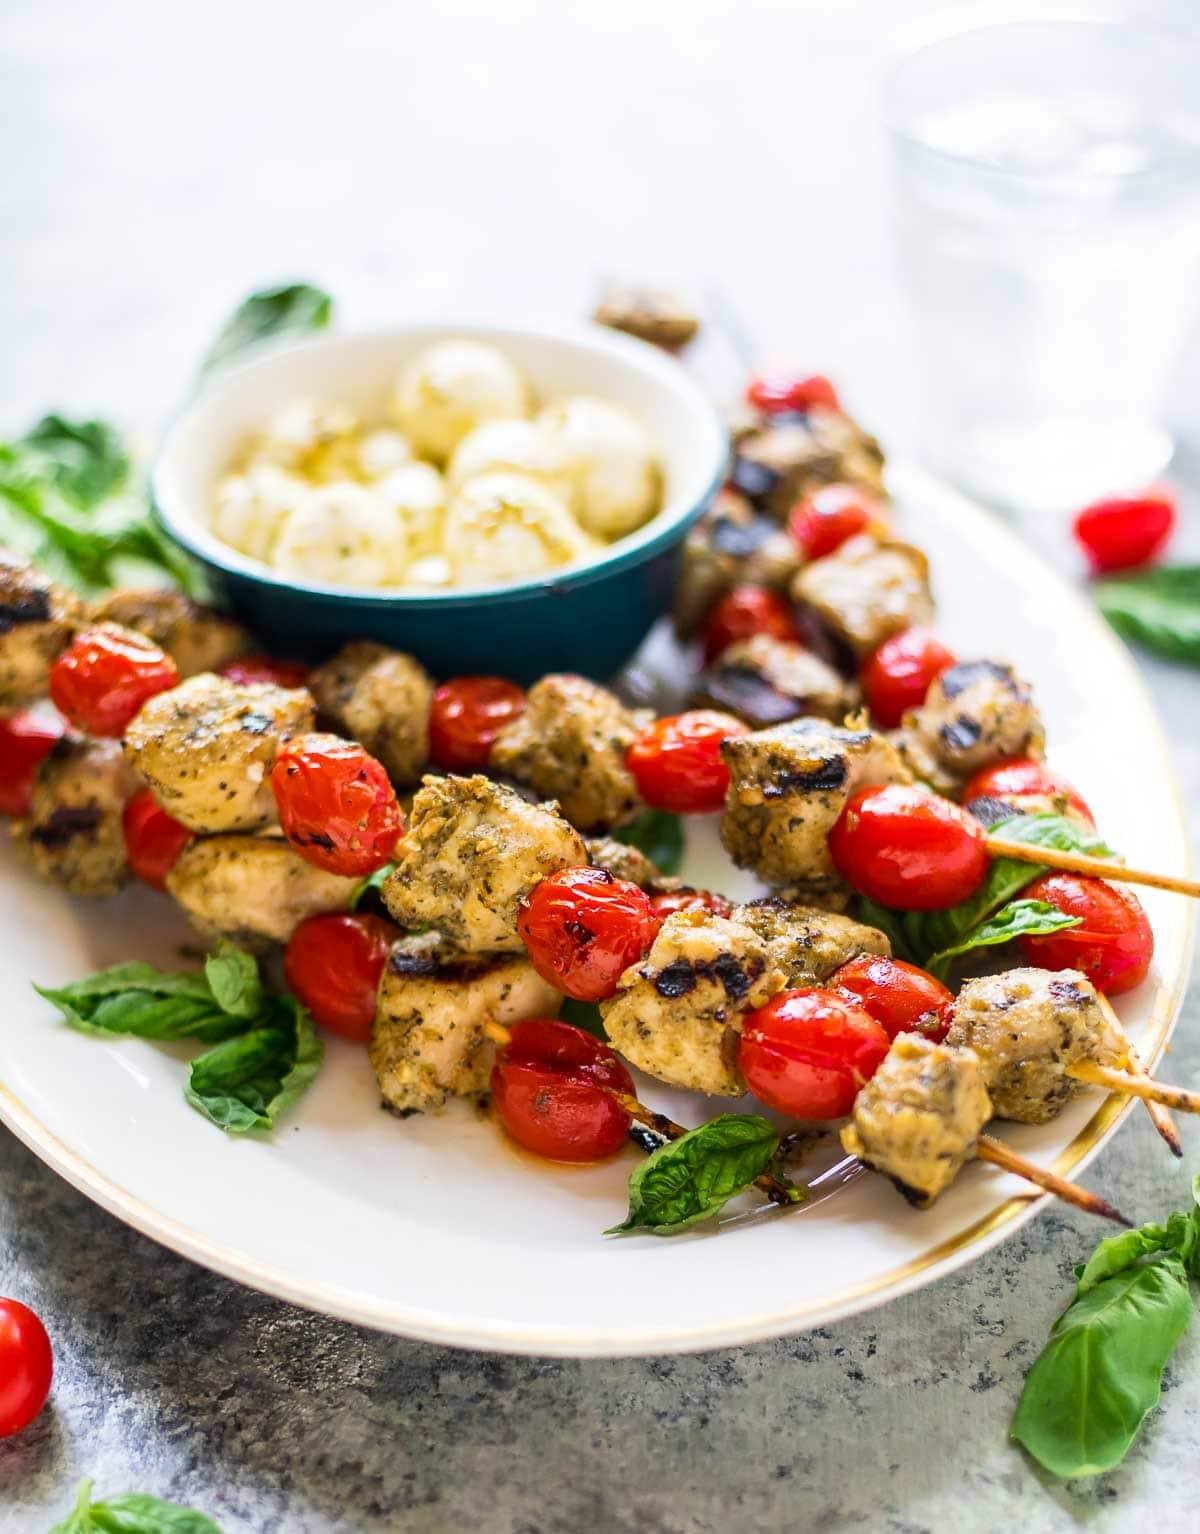 Grilled Chicken Pesto Skewers — No-fuss 3-ingredient kabobs! An easy, light, and healthy summer recipe that's perfect for busy weeknights and summer parties. Can be made a day ahead too! @wellplated